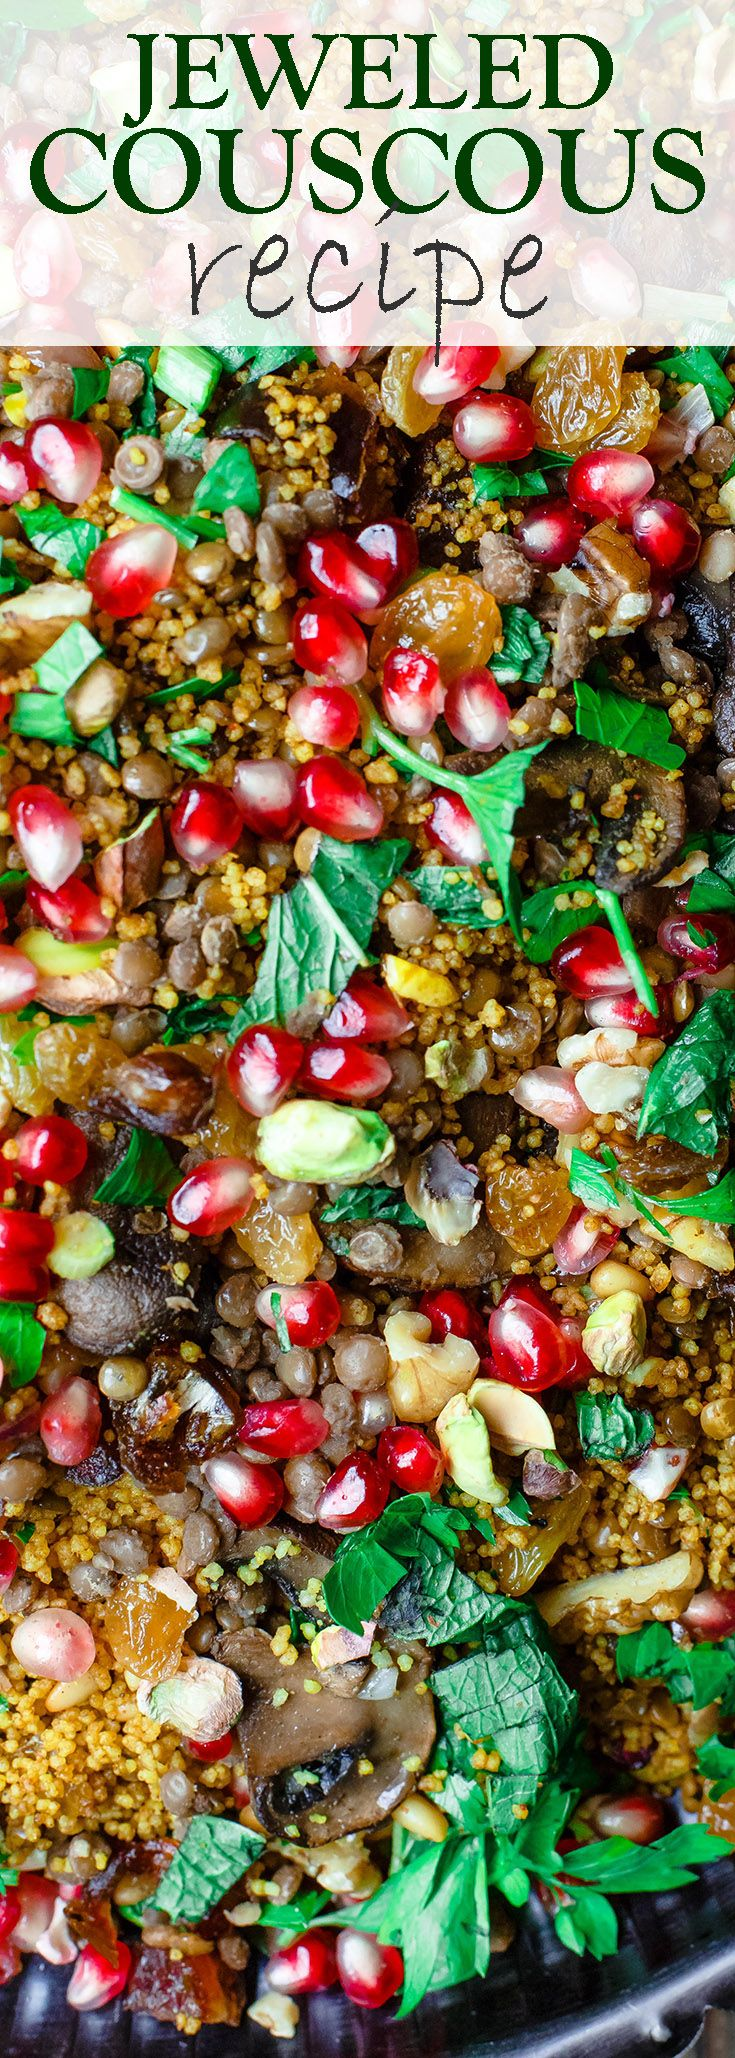 Jeweled Couscous Recipe with Pomegranate and Lentils   The Mediterranean Dish. An easy couscous recipe that makes the perfect side dish or salad! With lentils, nuts, pomegranate seeds, and flavor-packed with Mediterranean spices. Makes any dinner special! And perfect for Thanksgiving and Christmas too! See the tutorial on TheMediterraneanDish.com